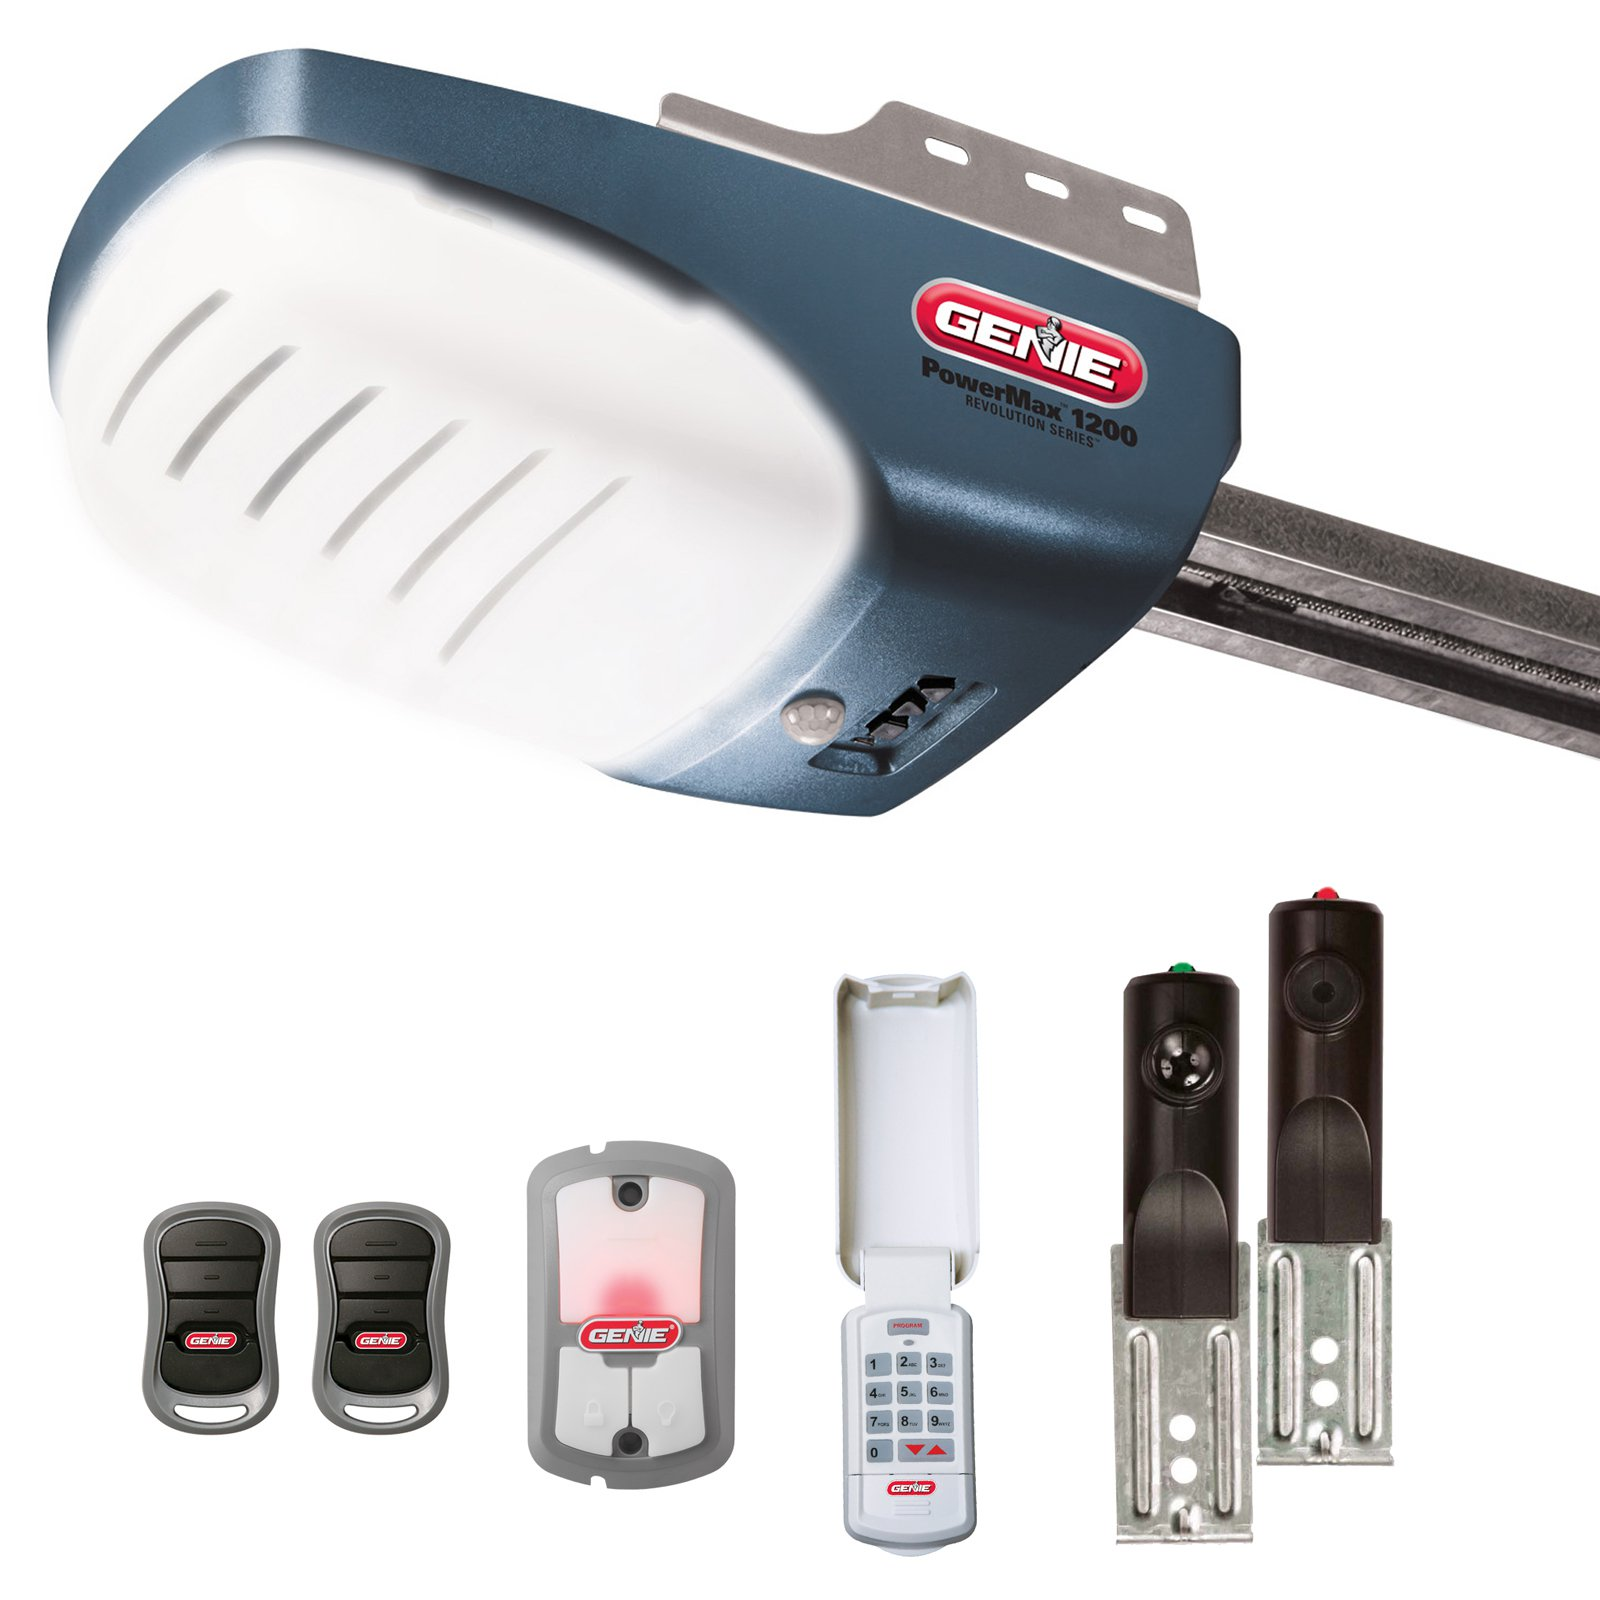 Genie 37282r Garage Door Opener with 3/4+ HPc DC Screw